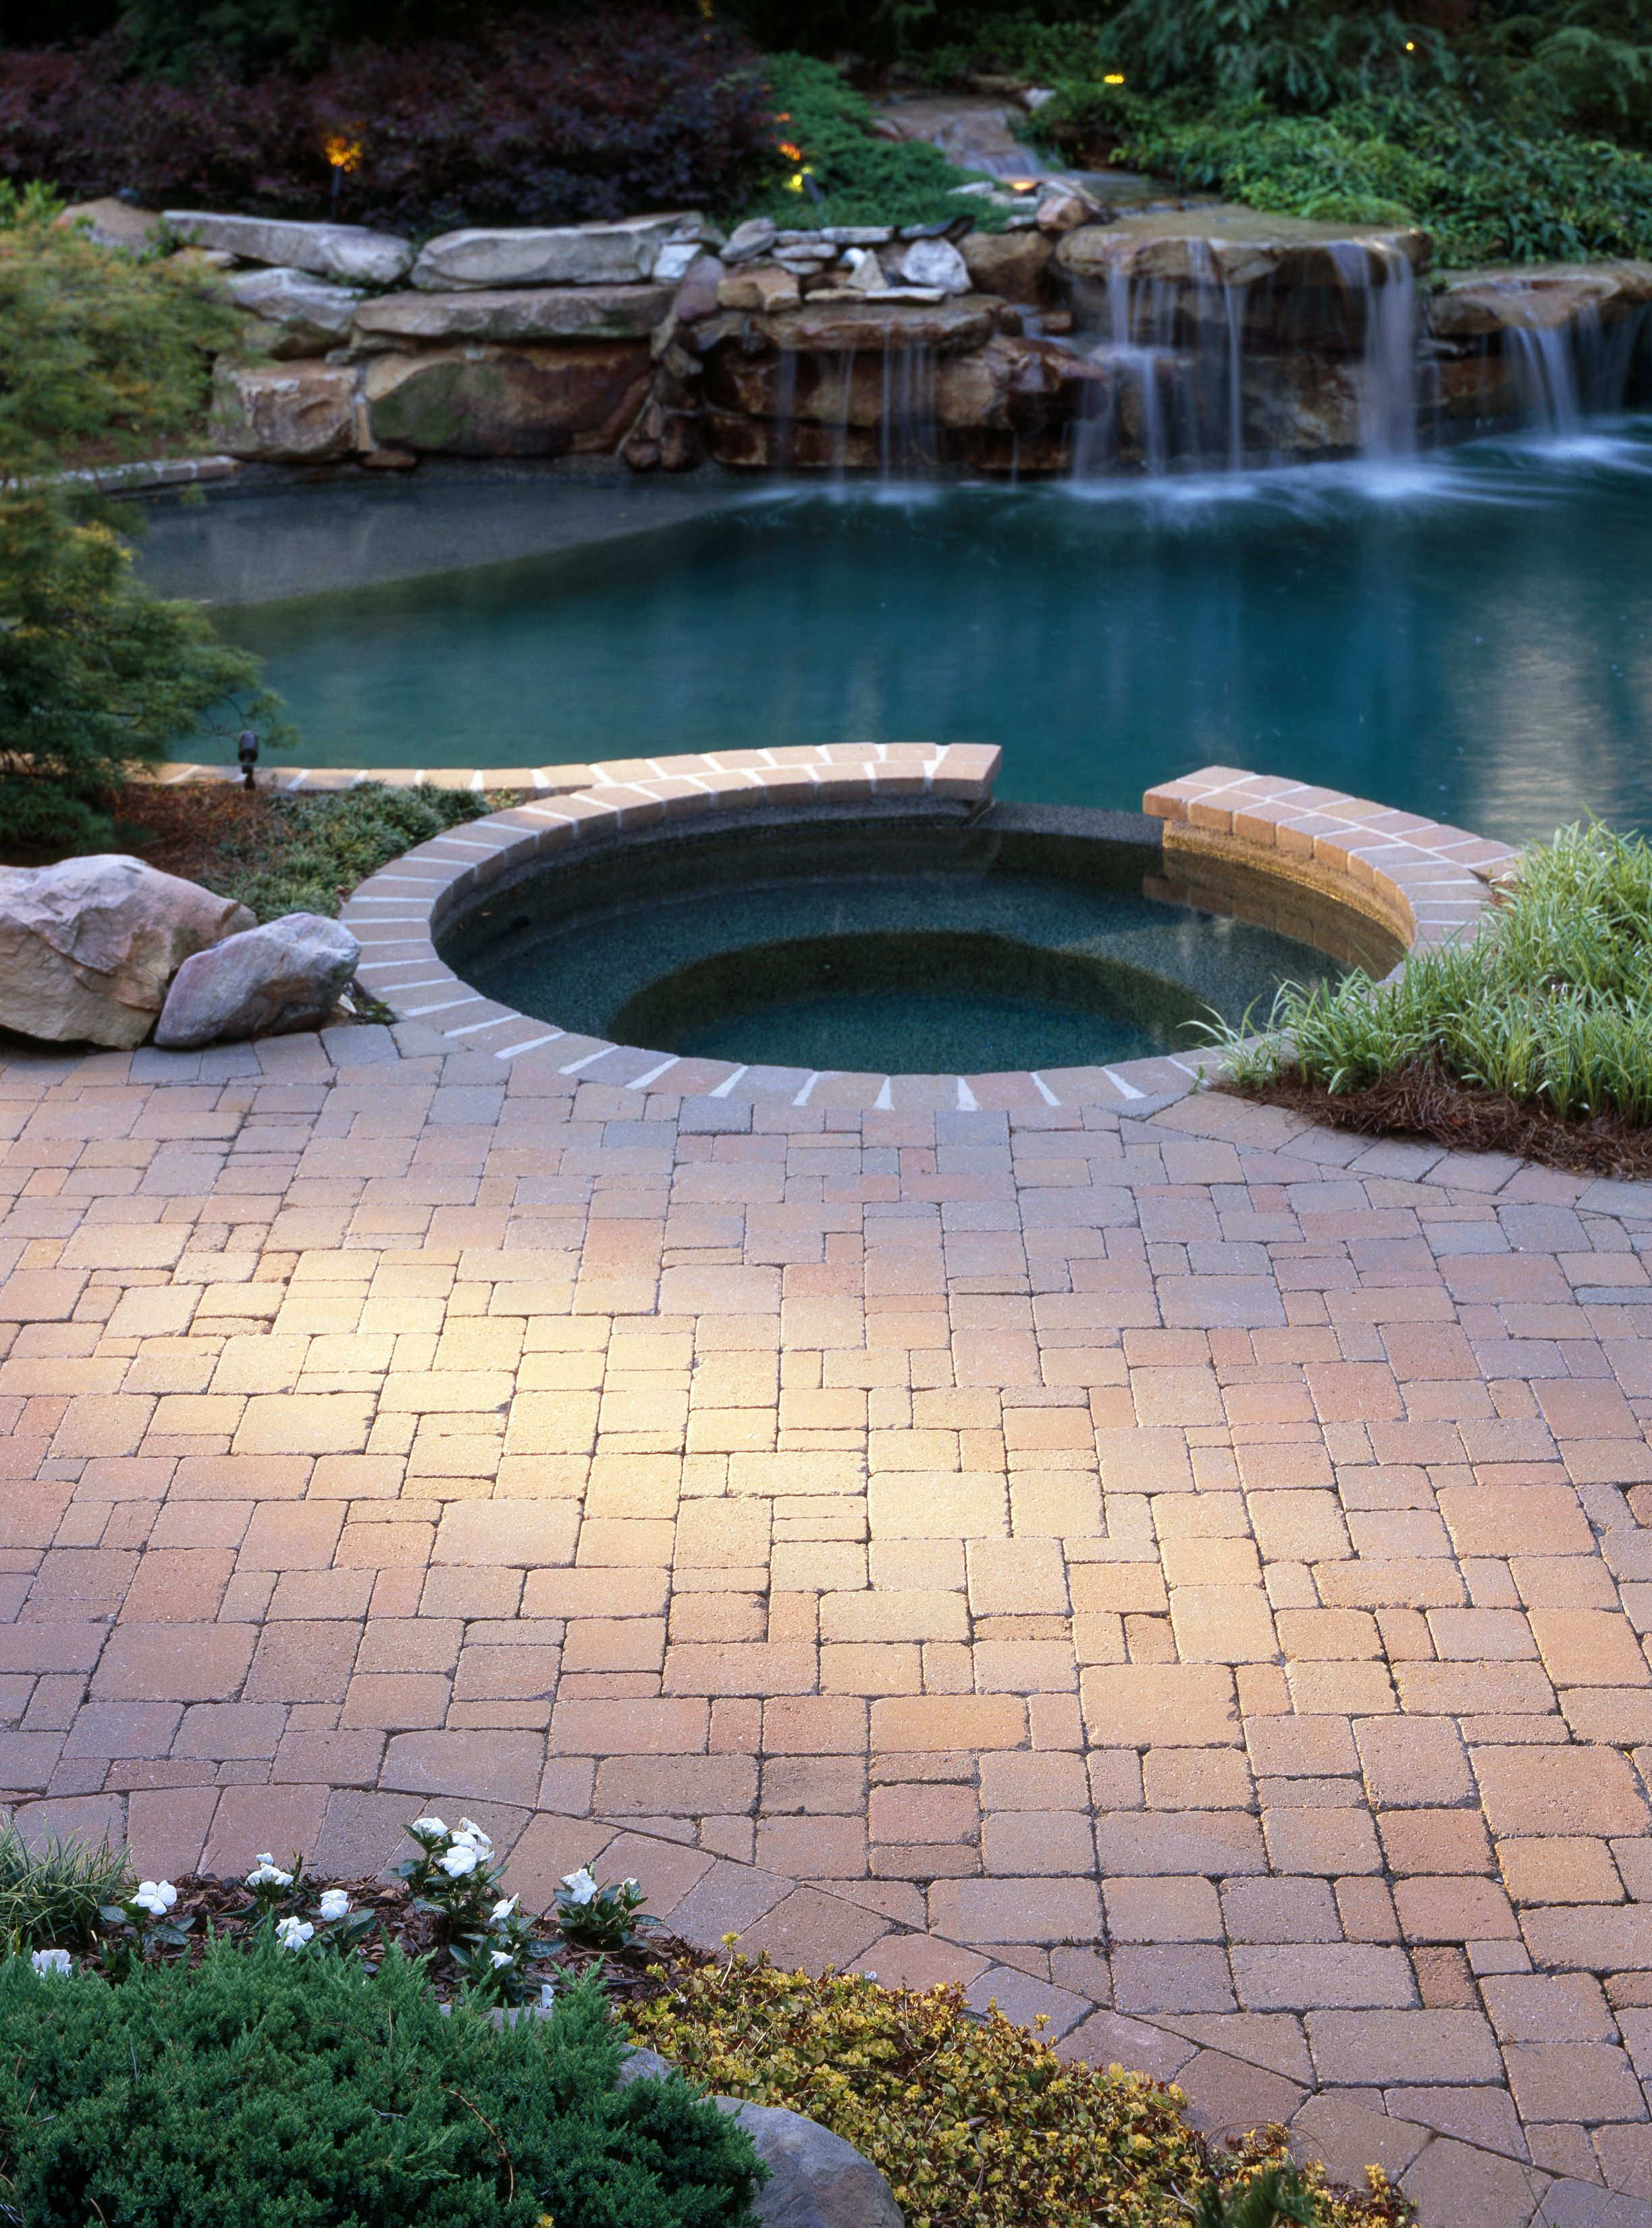 Red Paver Pool Deck And Hot Tub With Natural Stone Waterfall And Landscaping Brick Pavers Pool Deck Paver Tiles